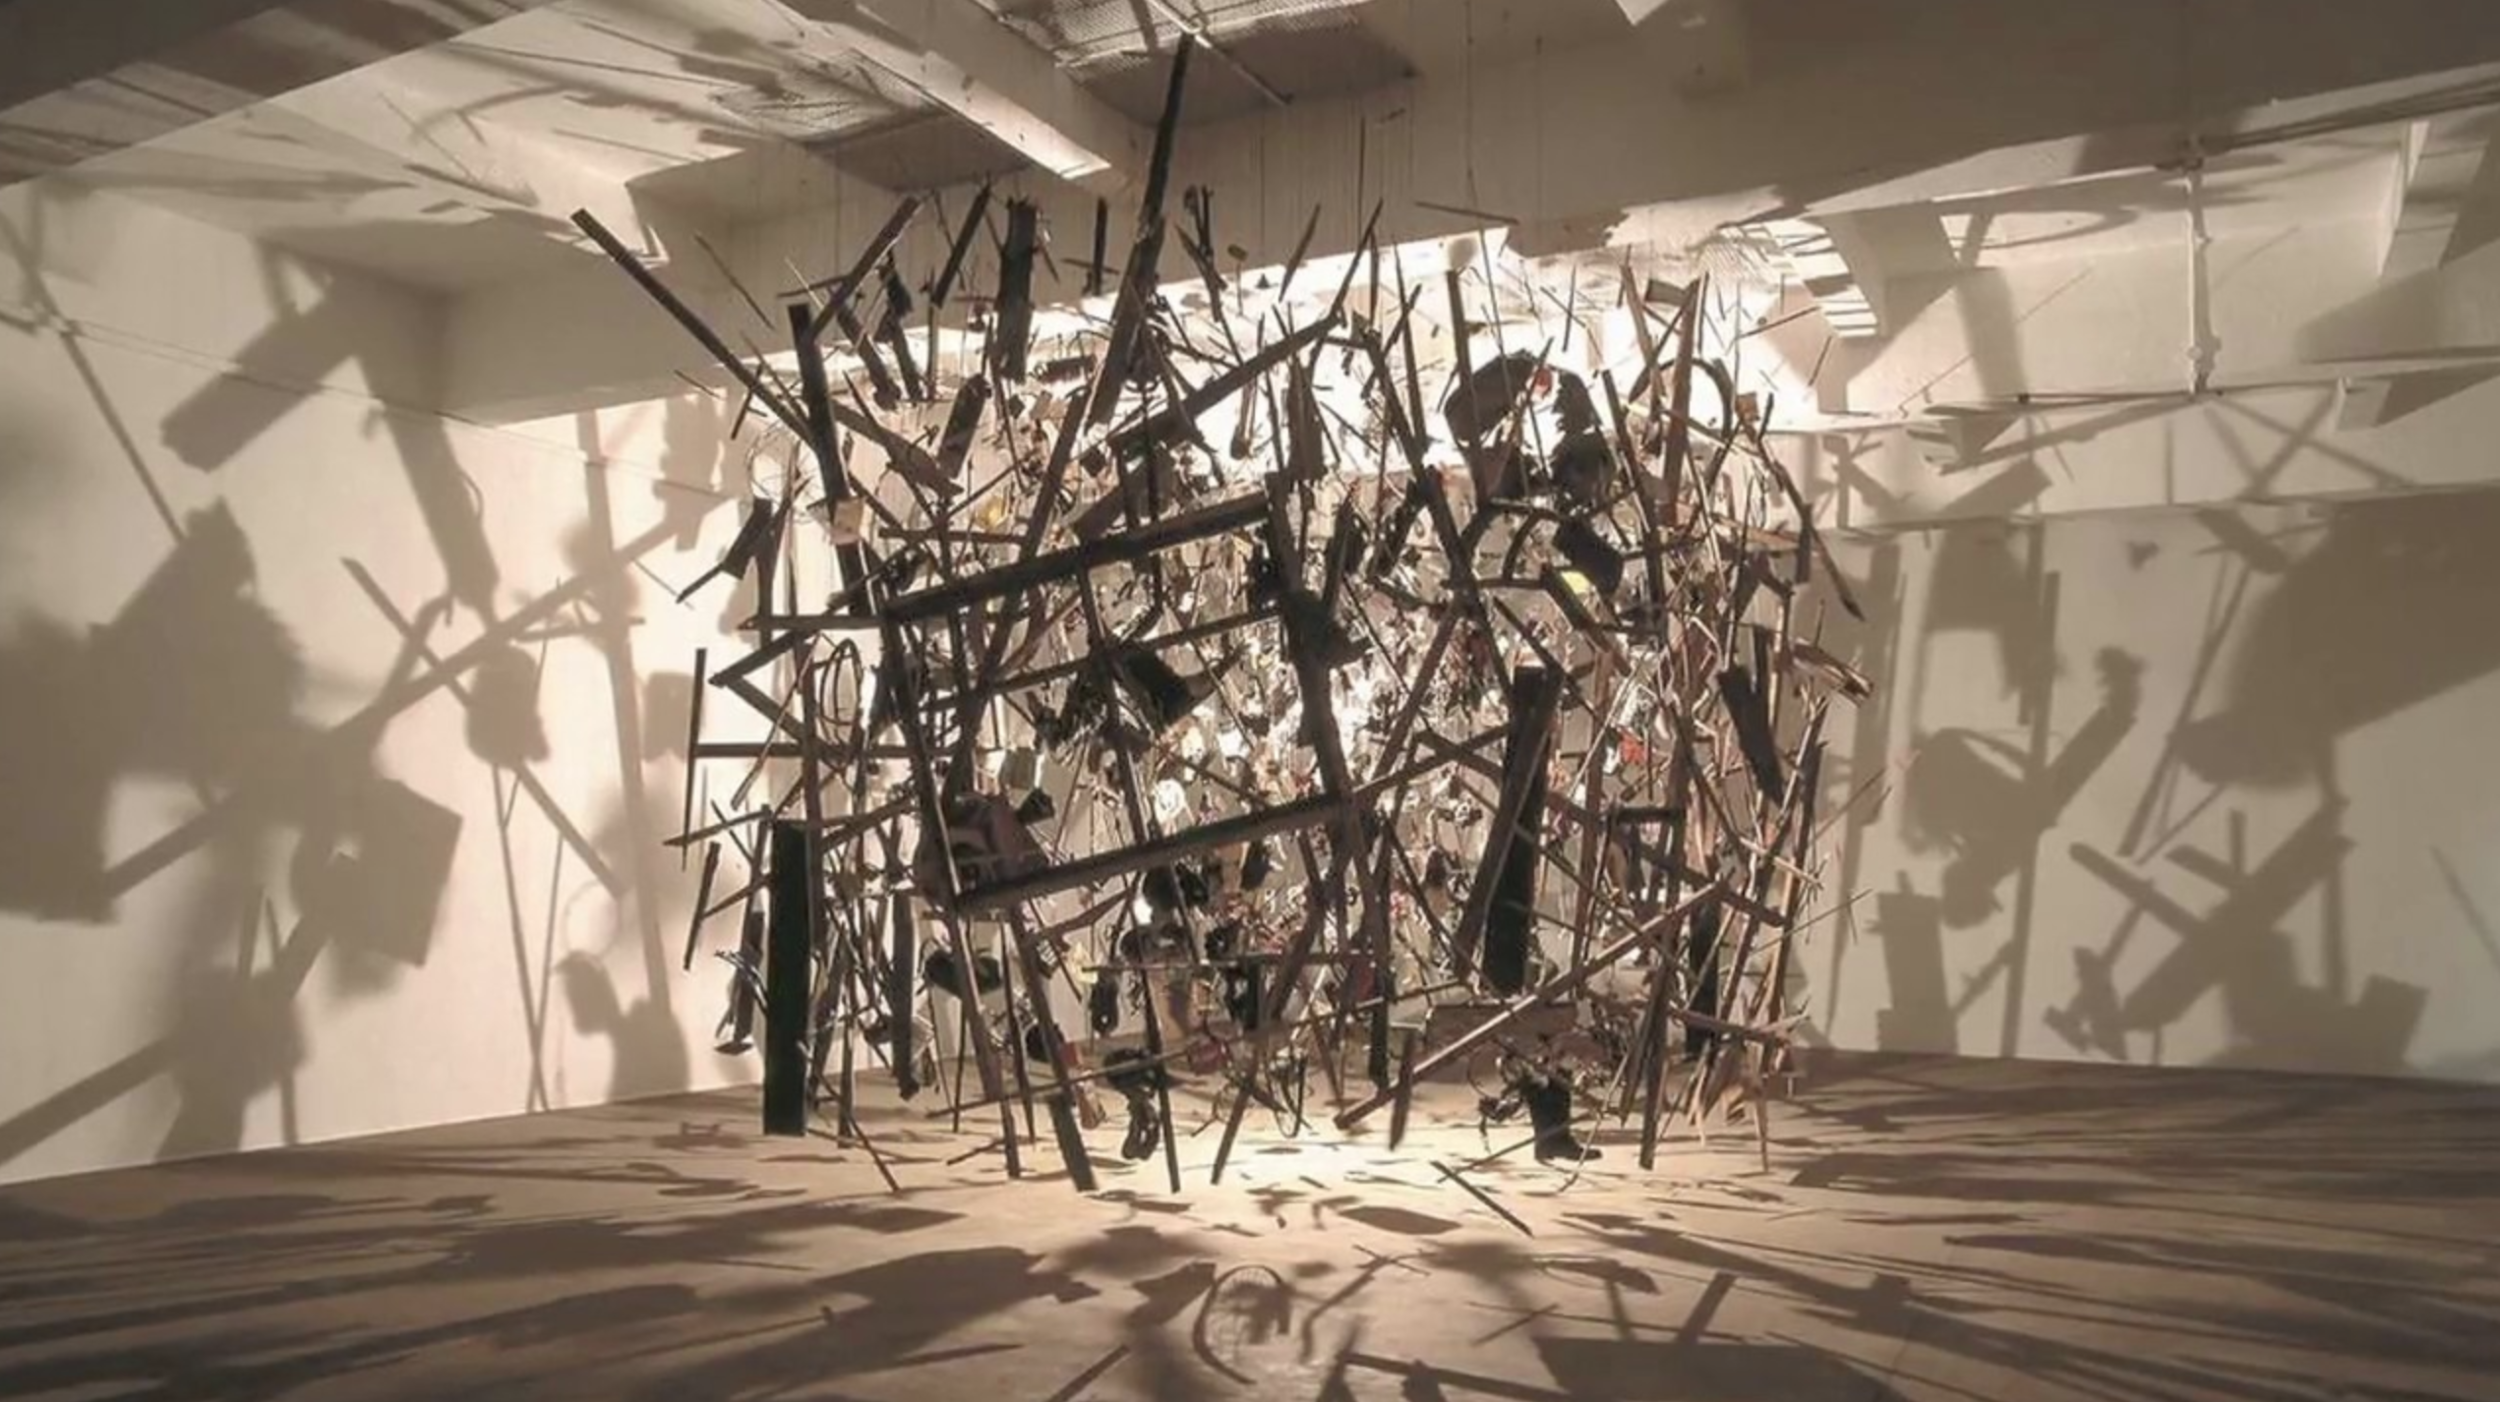 Cornelia Parker's Cold Dark Matter, an exploded shed